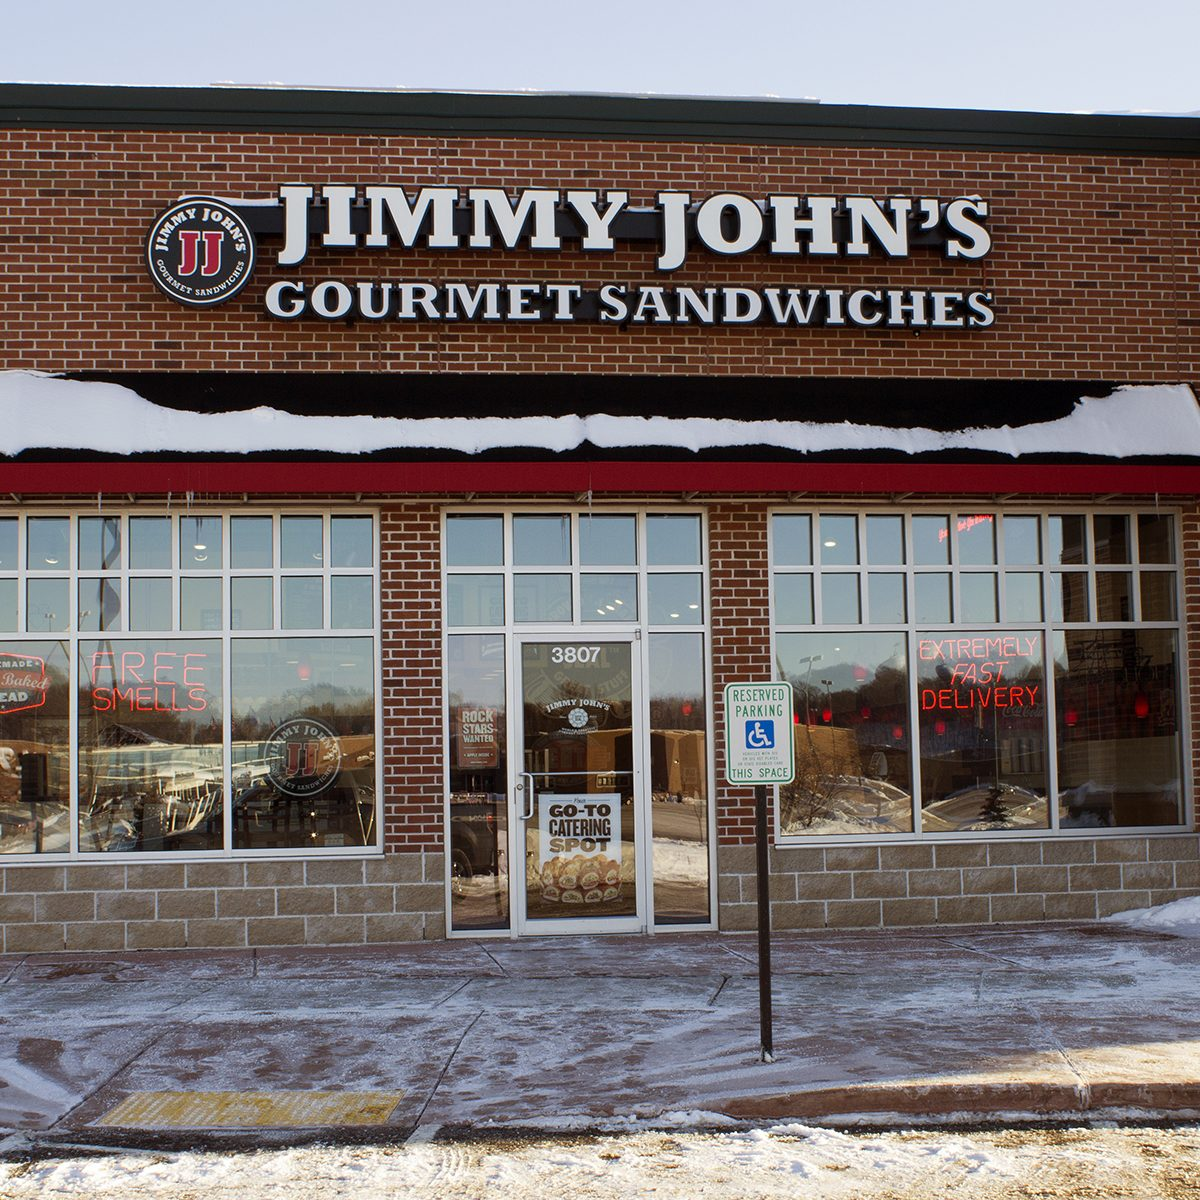 RIVER FALLS,WISCONSIN-FEBRUARY 02,2014: Jimmy John's restaurant storefront. Jimmy John's has opened approximately 200 units per year over the last three years.; Shutterstock ID 174622448; Job (TFH, TOH, RD, BNB, CWM, CM): TOH